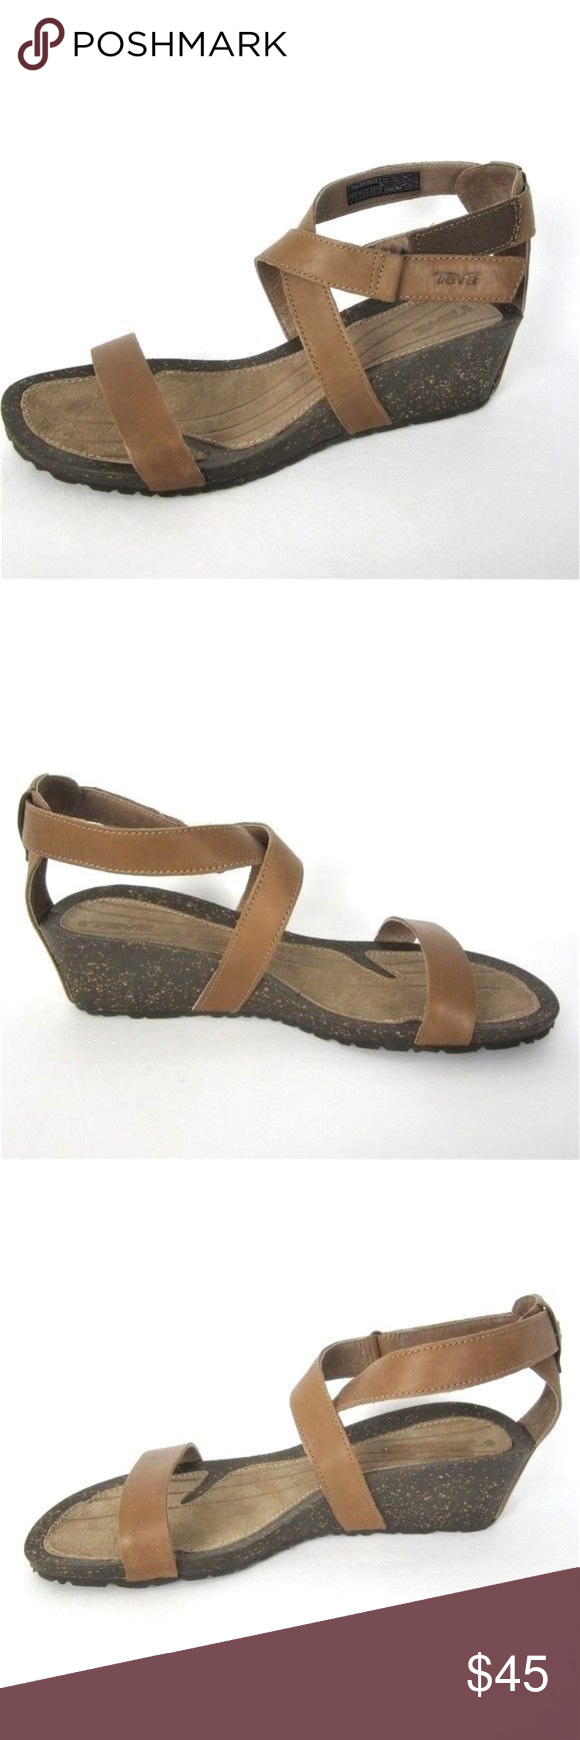 34dc46b976a8 Teva 11 Women s Wedge Sandals NrNu Brown Cabrillo Leather uppers with wrap  around hook and loop